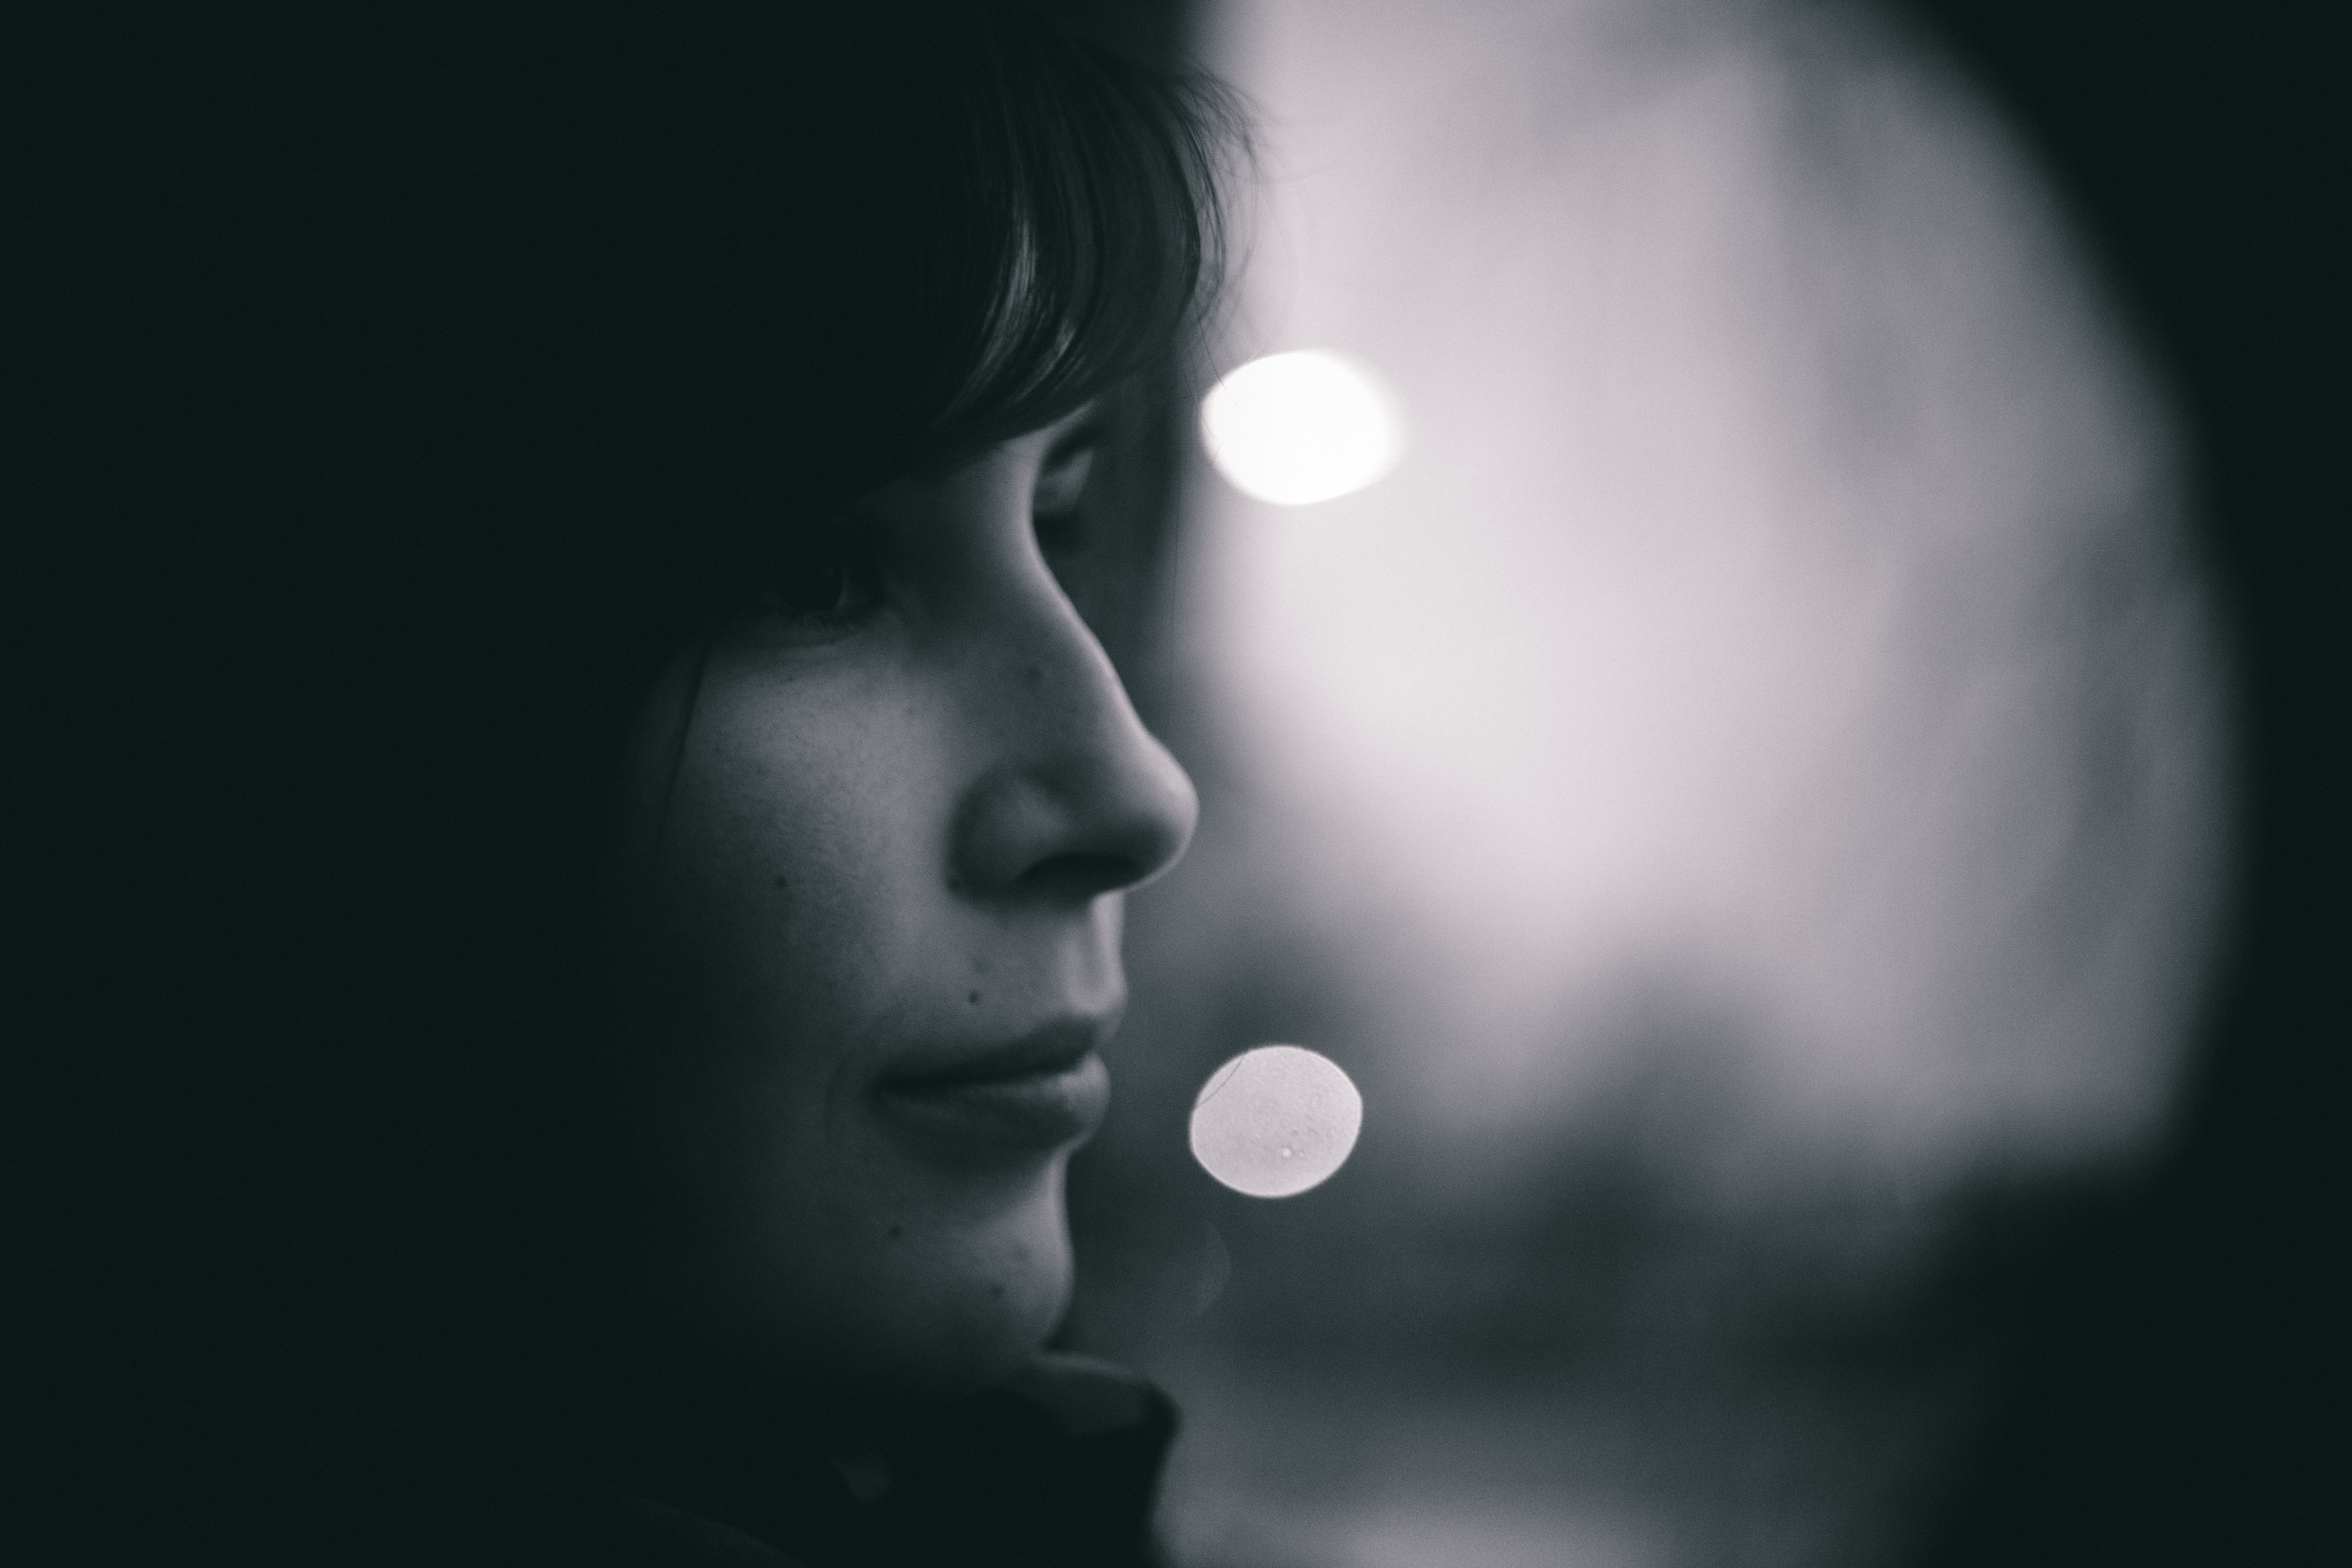 Profile of a woman's face in the shadows surrounded by bokeh lights